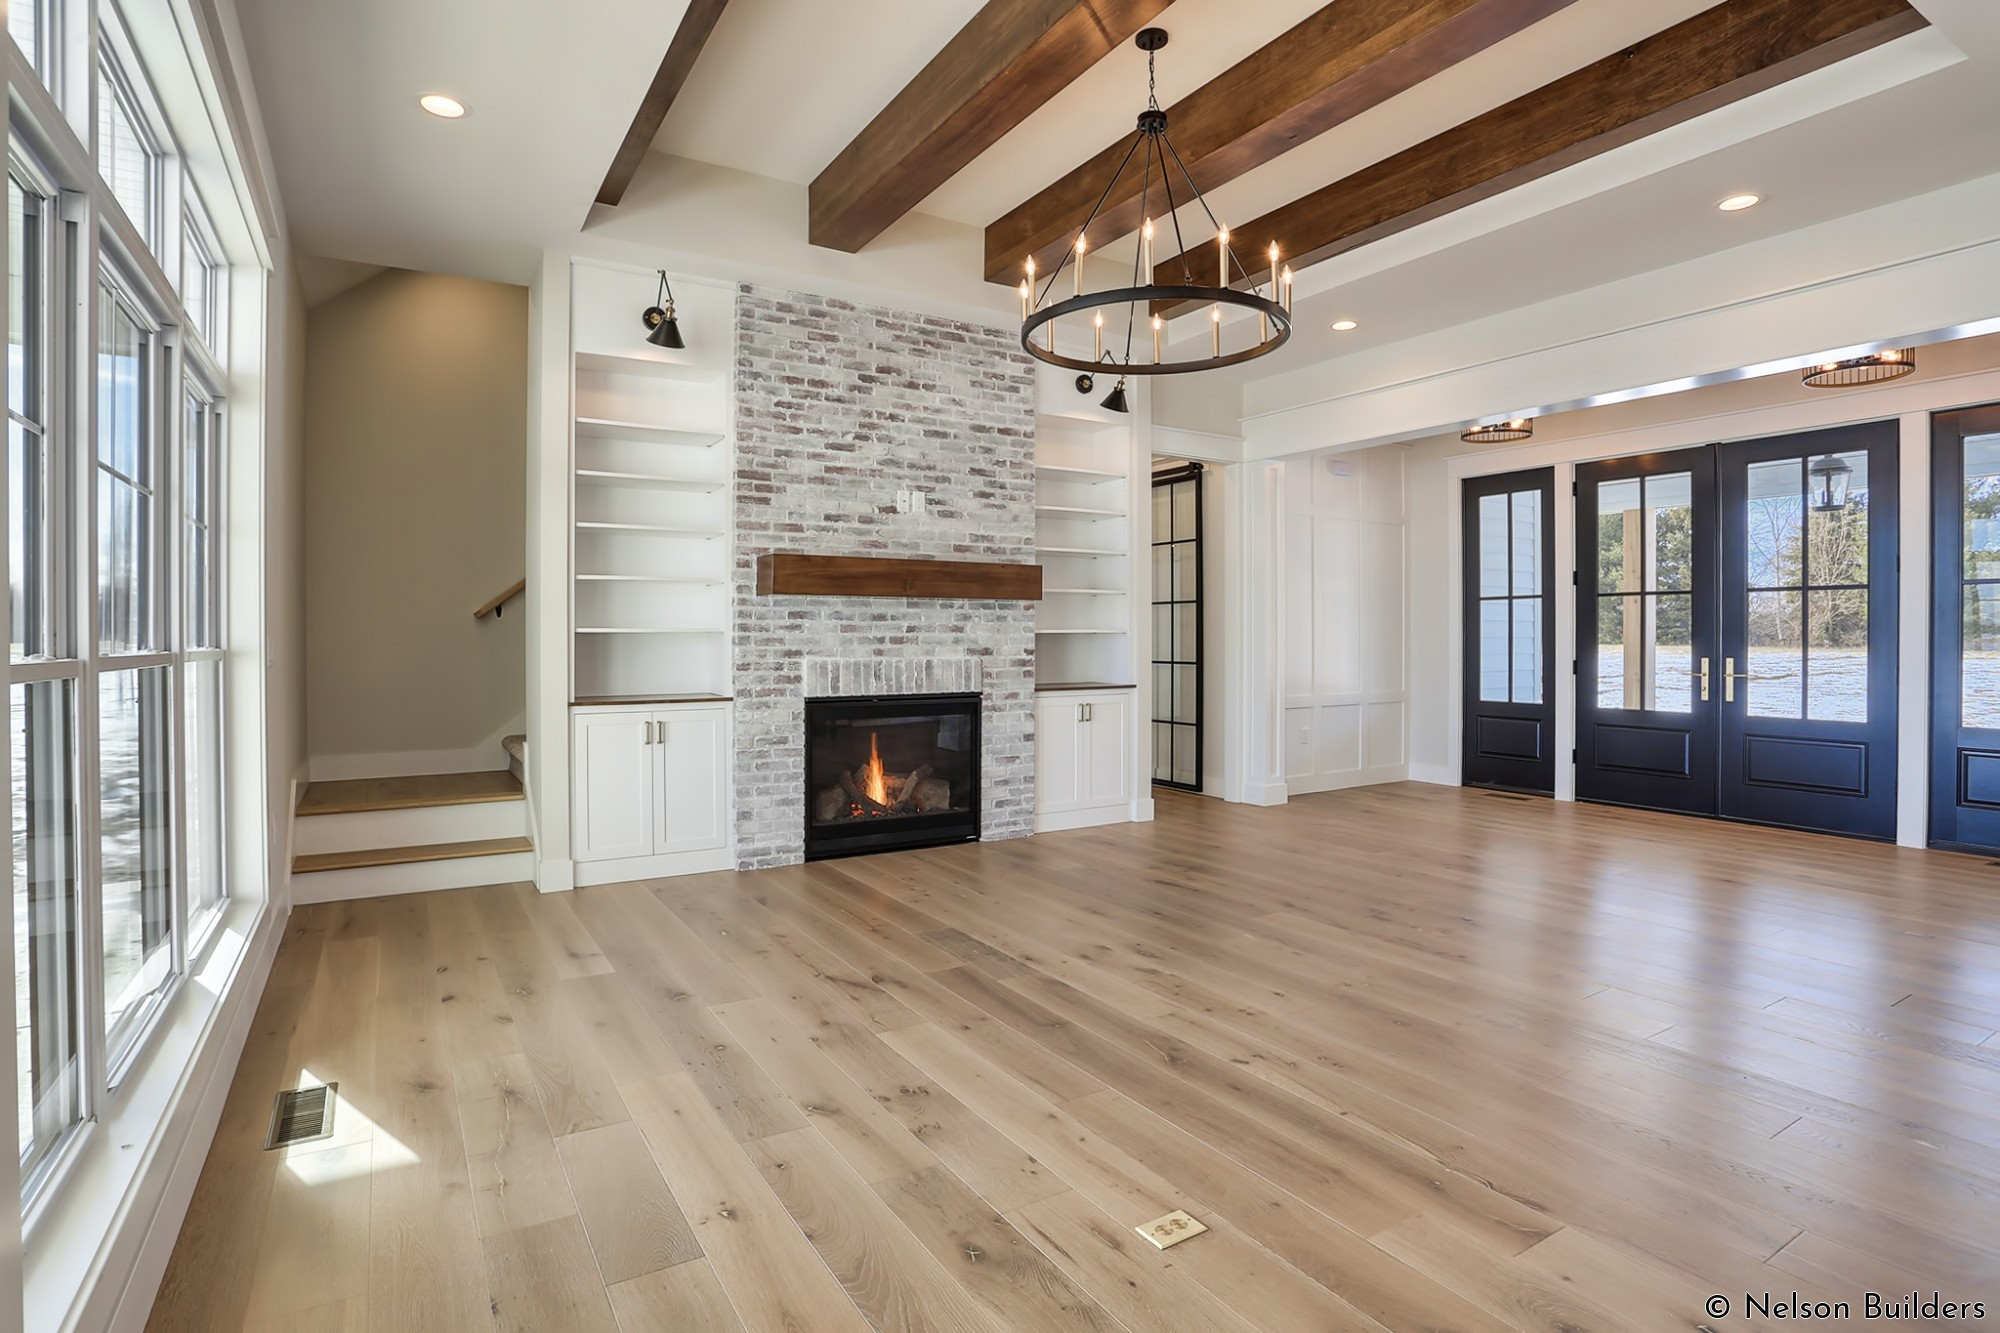 The fireplace is flanked on both sides with built-in bookcases, including library lights for accent lighting.